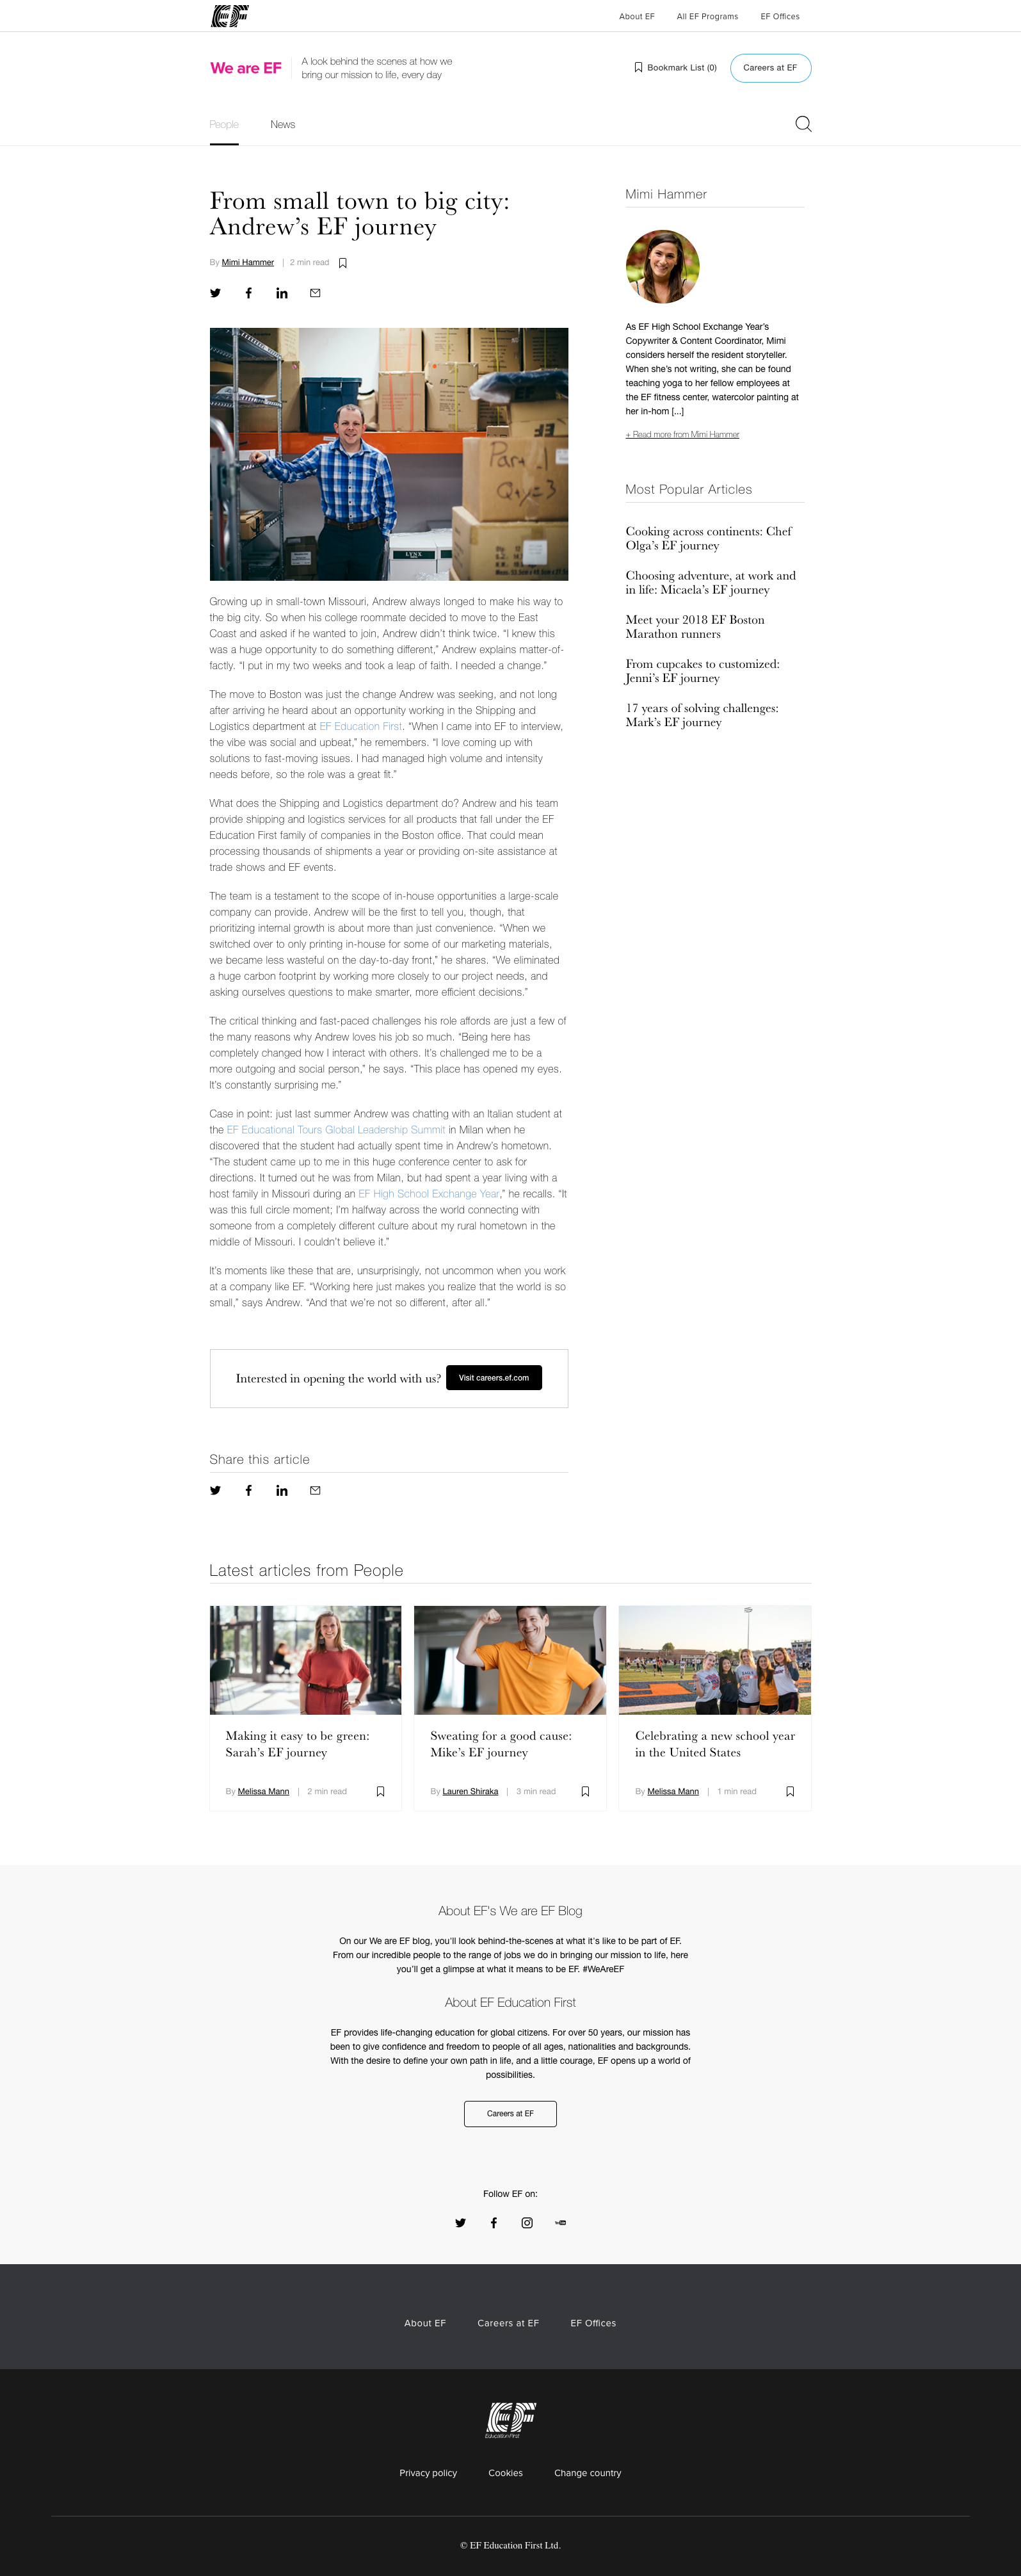 screencapture-ef-blog-we-are-ef-from-small-town-to-big-city-andrews-ef-story-2018-09-20-17_46_01.png